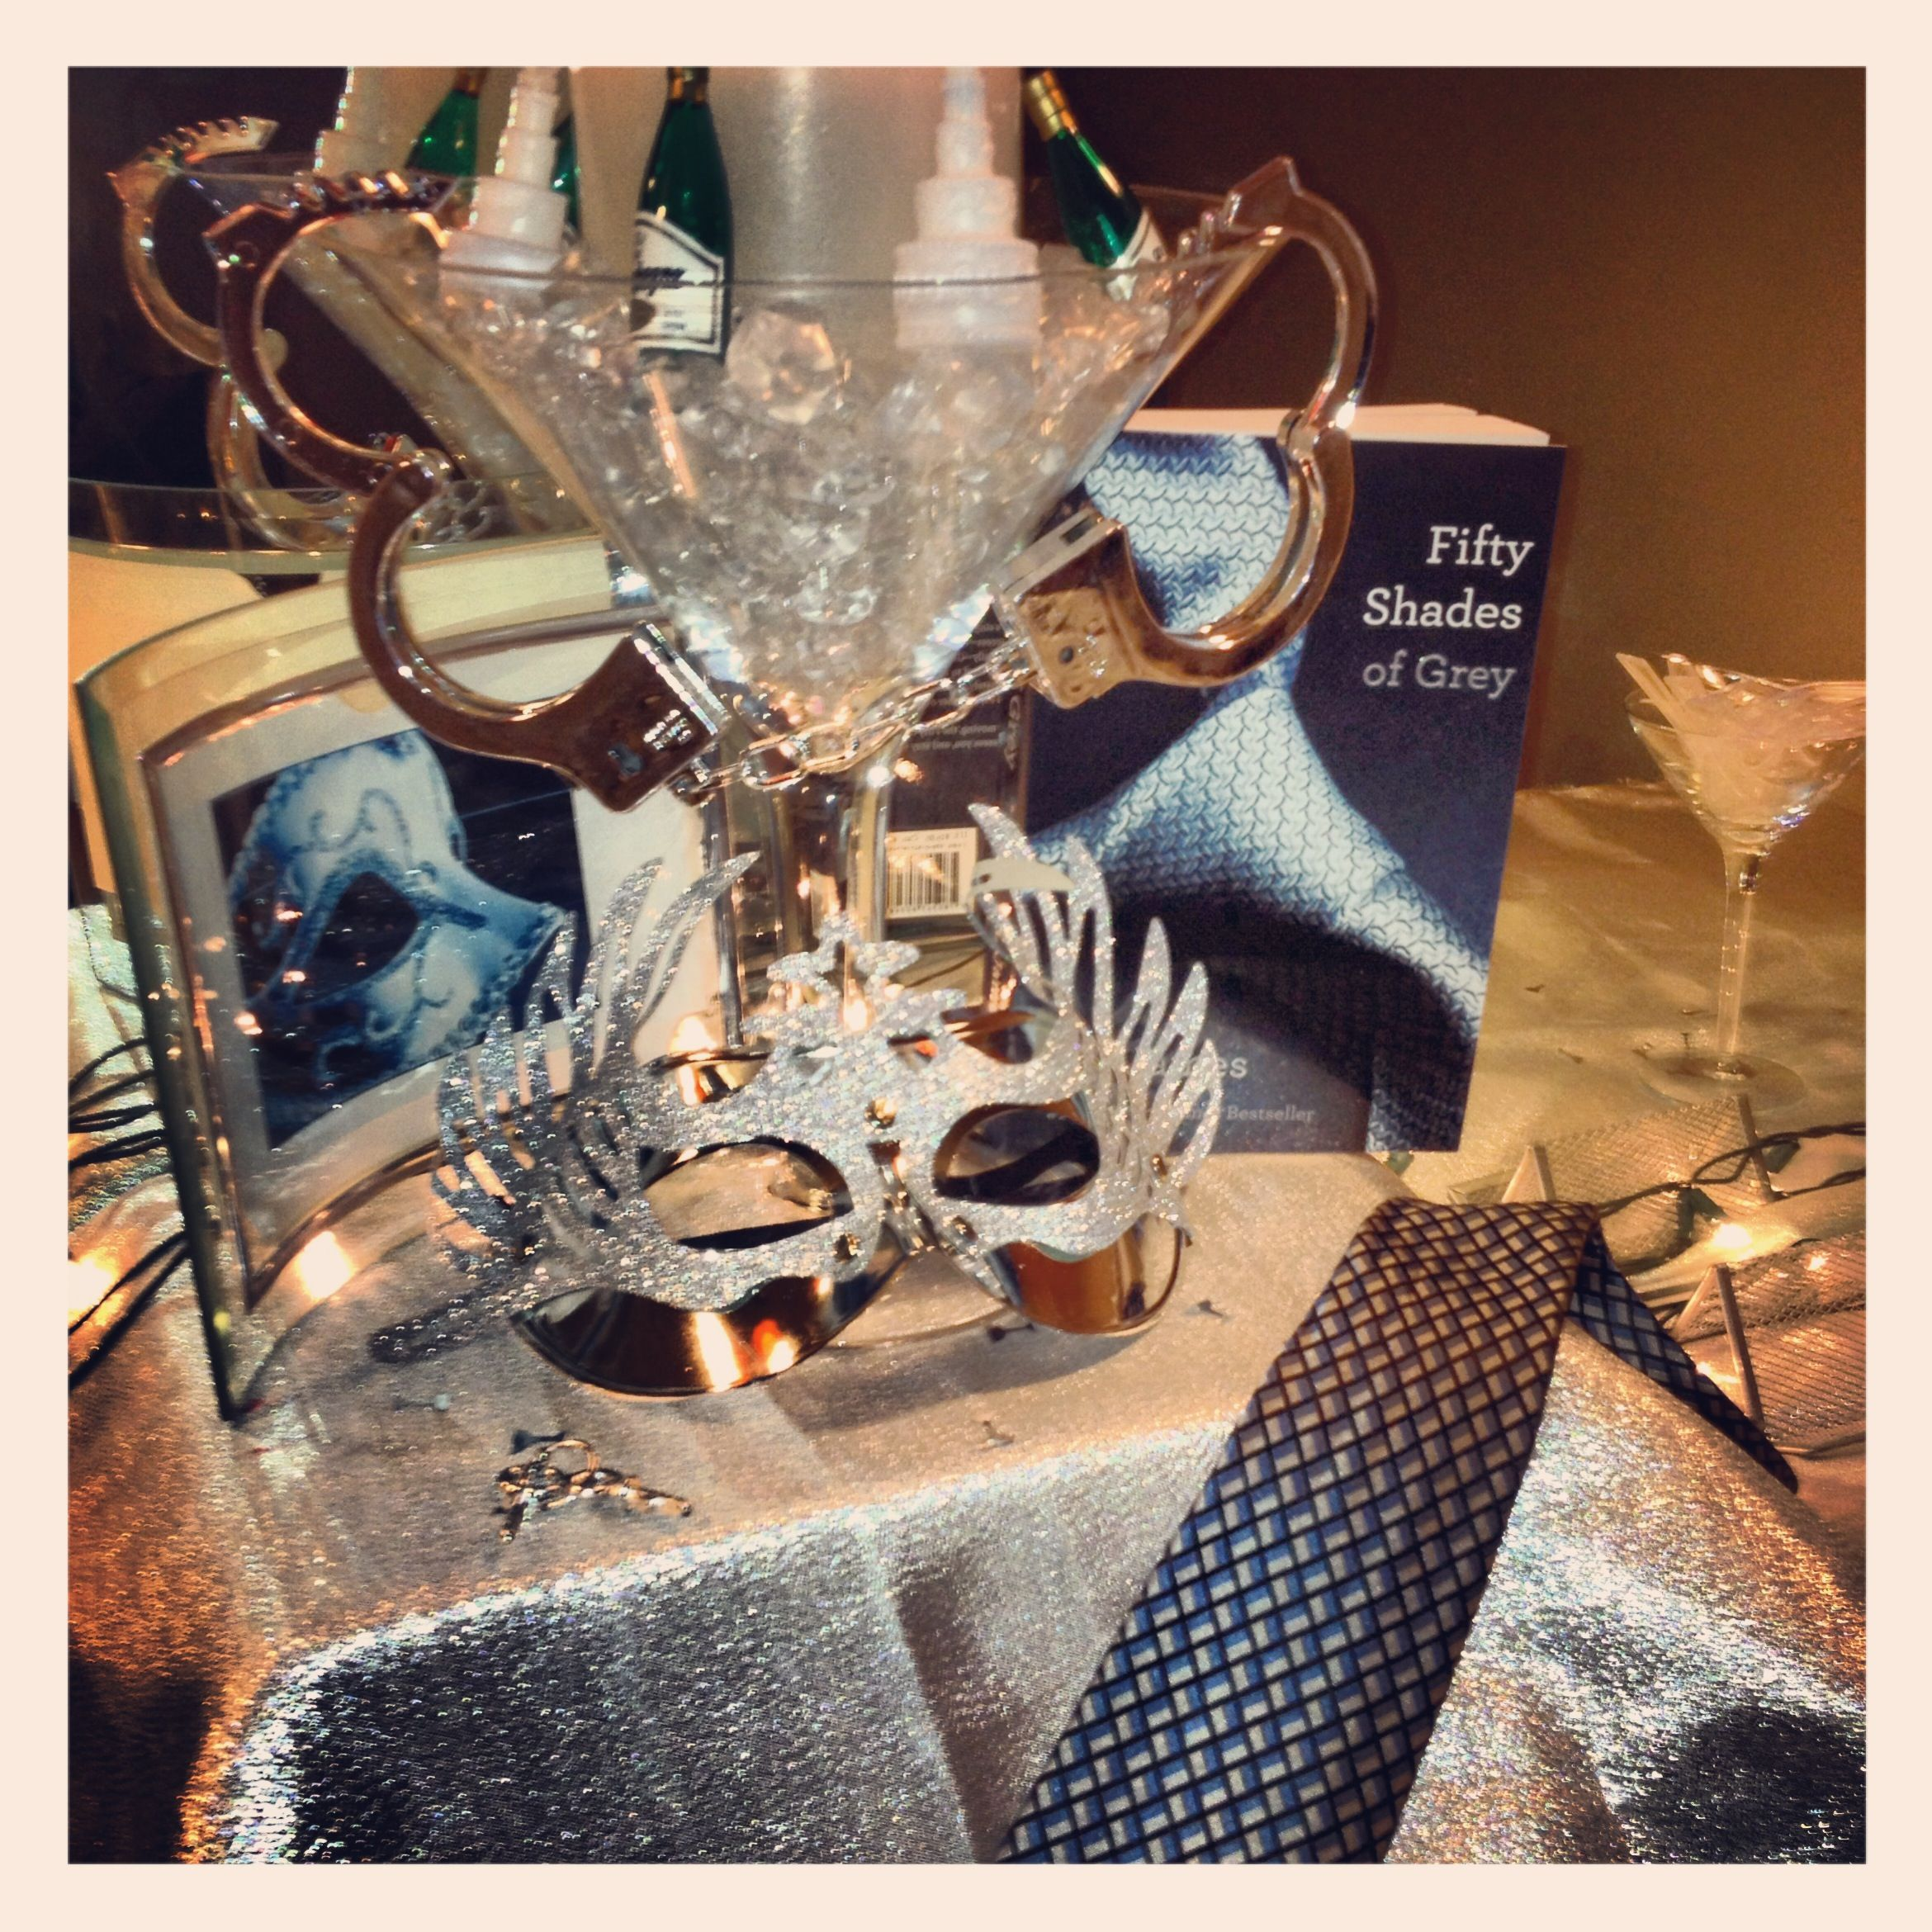 50 shades of grey bridal shower or bachelorette party 50 shades of grey party d by wedfunappscom